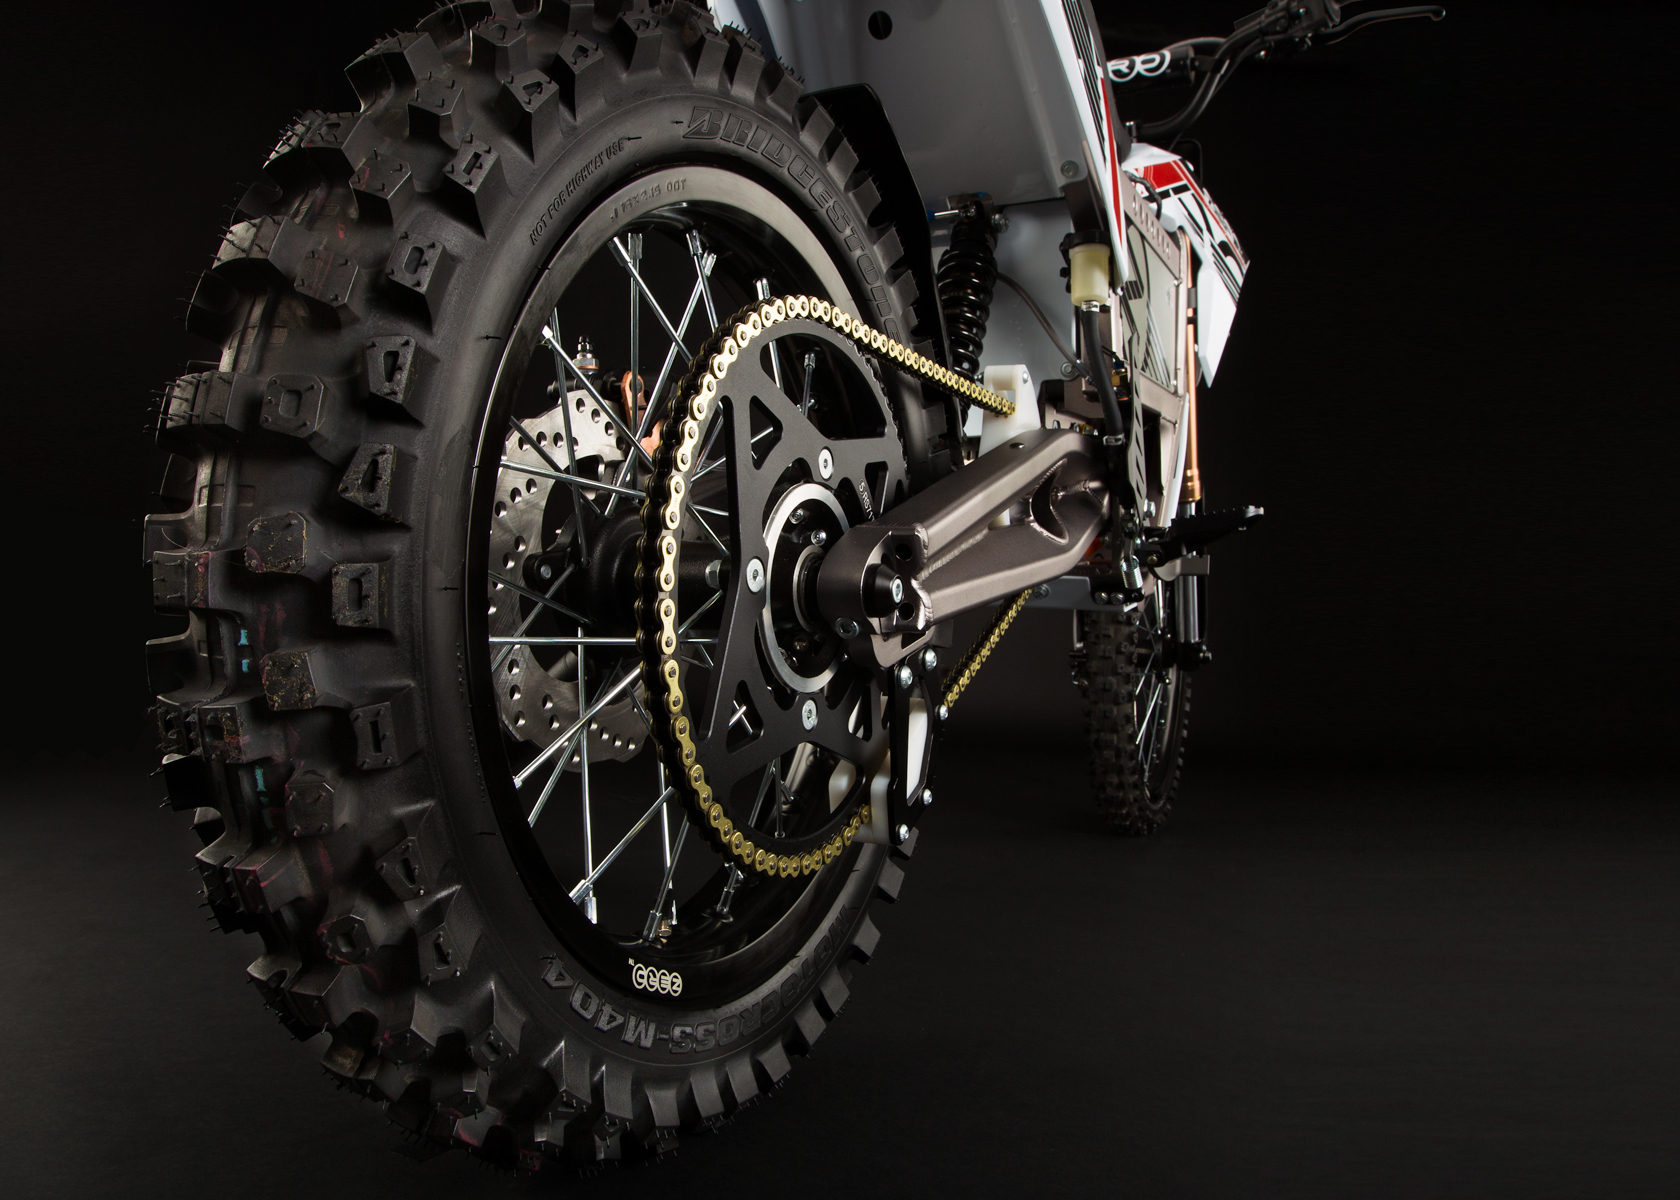 2012 Zero MX Electric Motorcycle: Back Tire